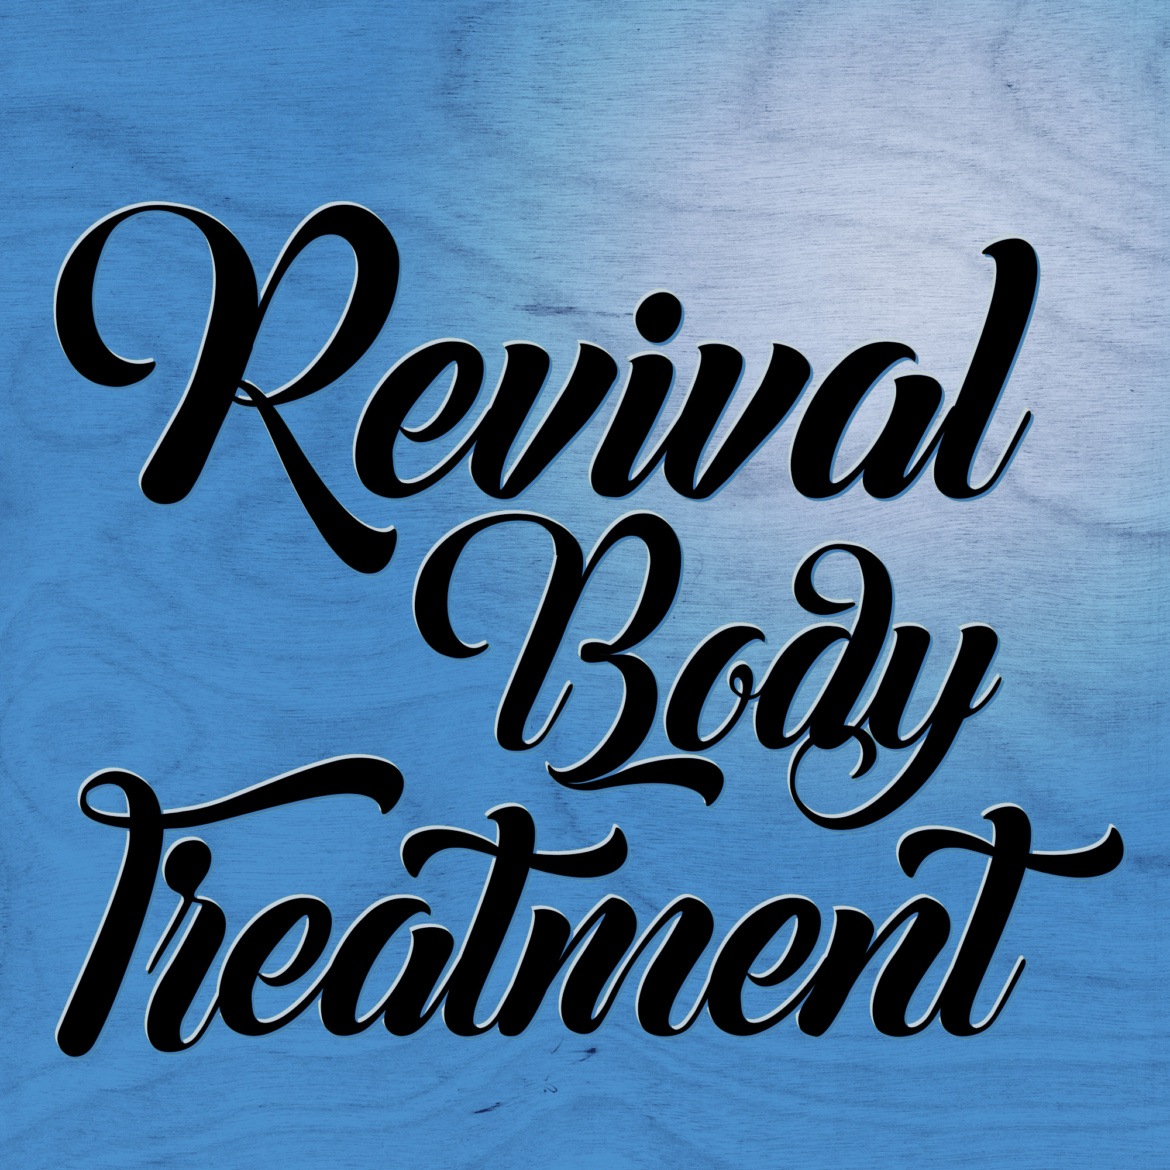 revival-body-treatment.jpg